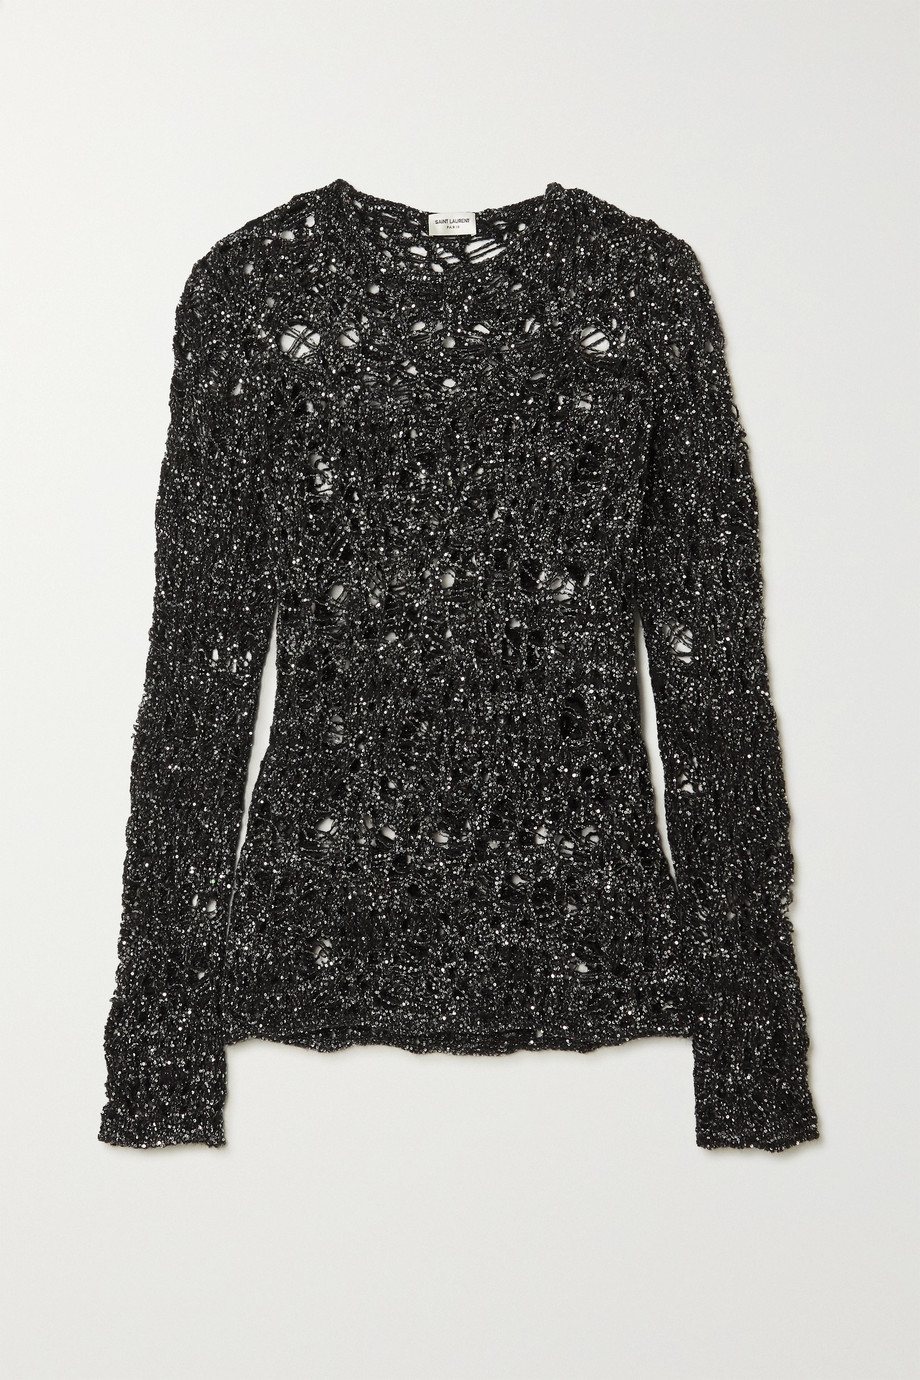 SAINT LAURENT Sequined distressed open-knit sweater